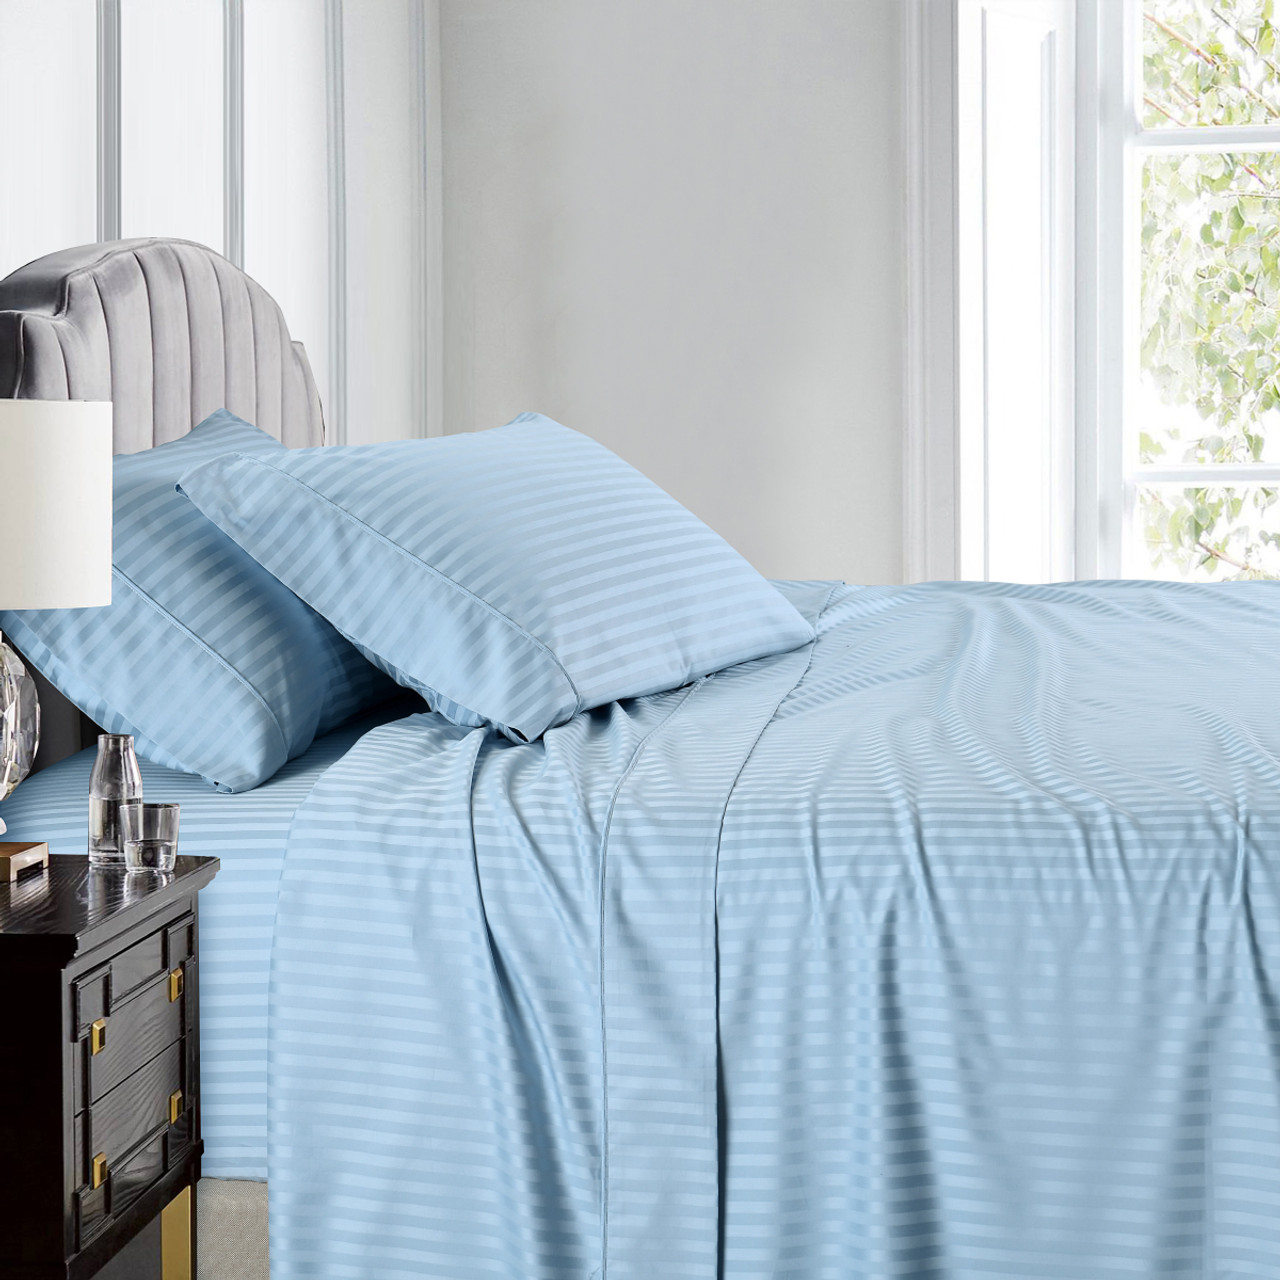 8e33a797b8 ... Blue-Pure Cotton 600 Thread Count Sheets Damask Striped Bed Sheet Set  ...